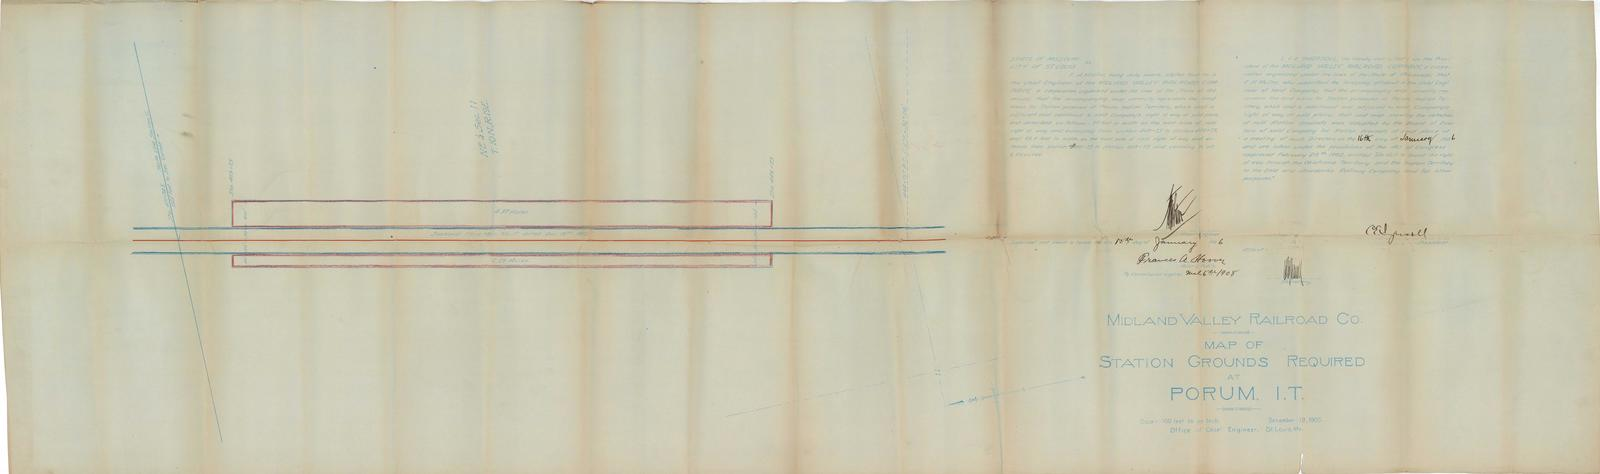 Midland Valley Railroad Co. Map of Station Grounds Required at Porum ...